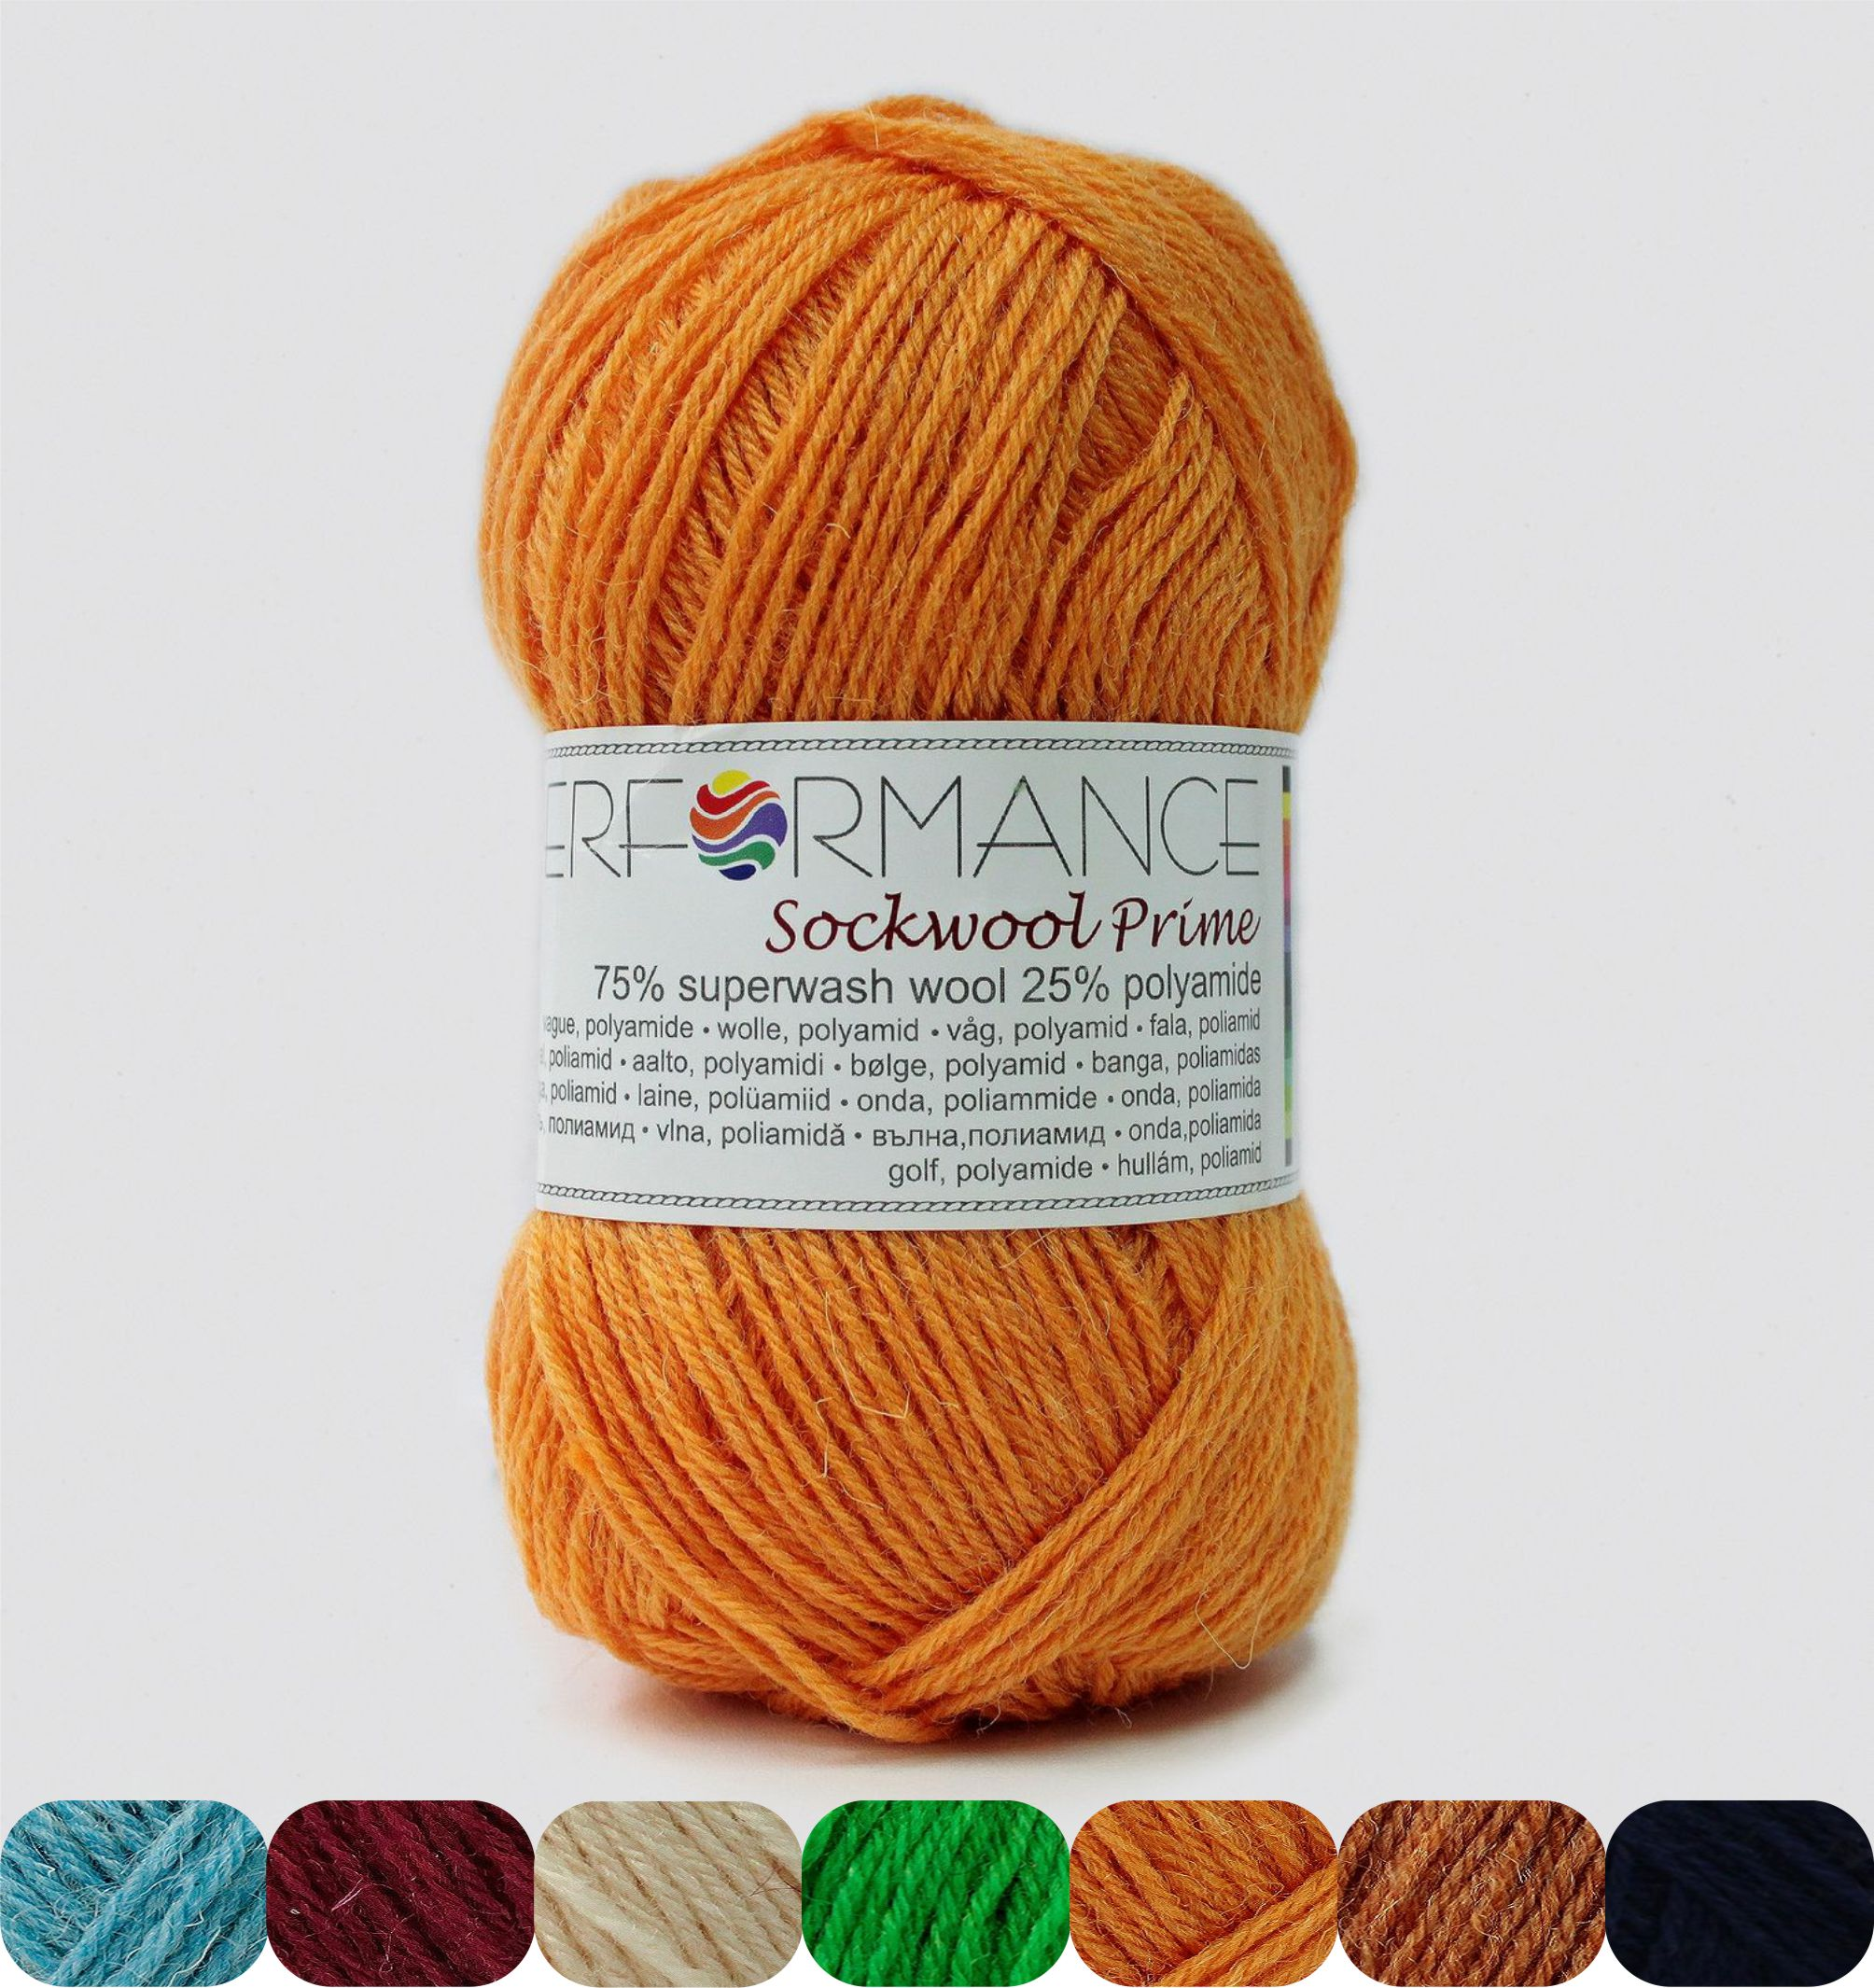 Garn Sockwool Prime - 75% Superwash Wolle, 25% Polyamide - NM 17/4 - 200 m pro 50 g - Kürbis 192